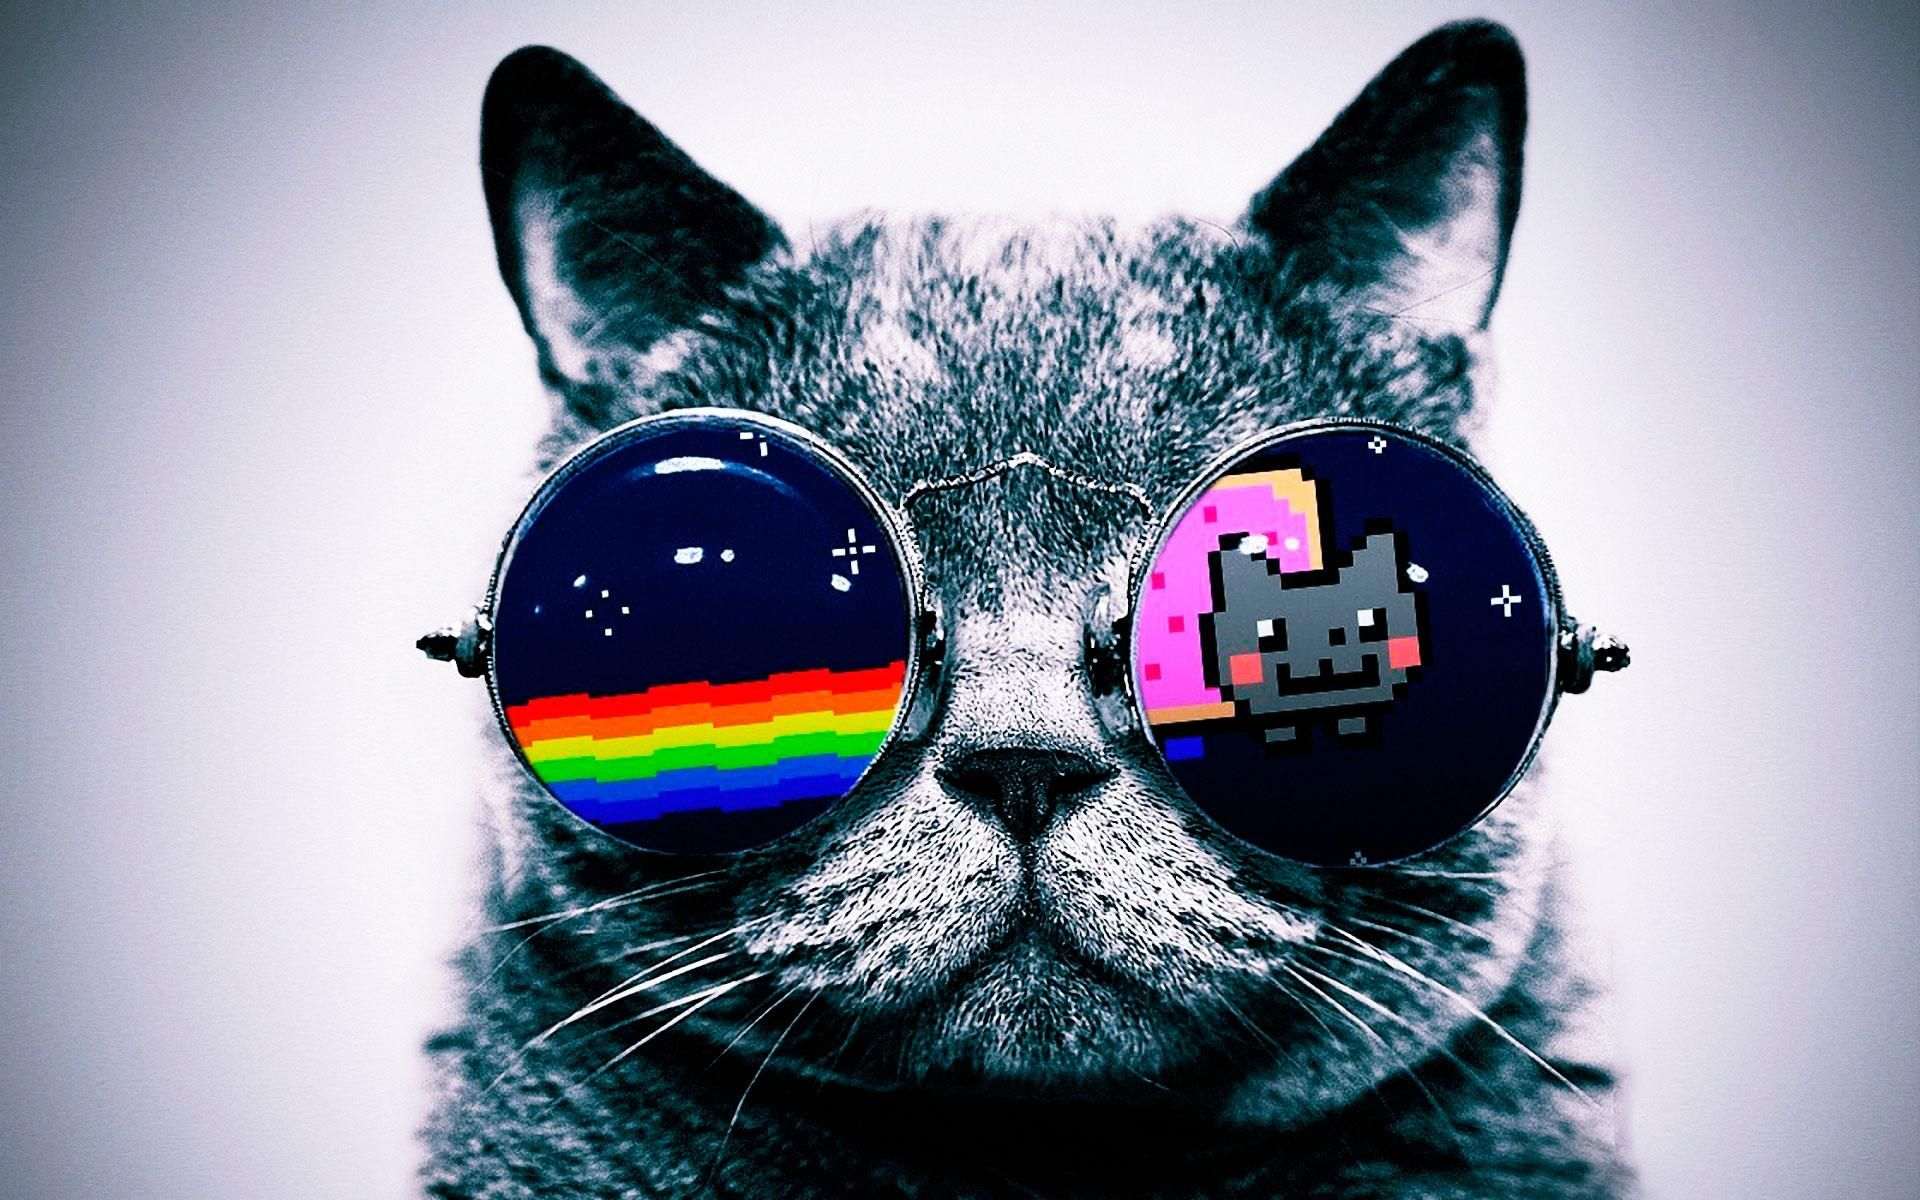 Pin By Alex Hailey On Backgrounds Wallpapers Nyan Cat Cat Background Hipster Cat